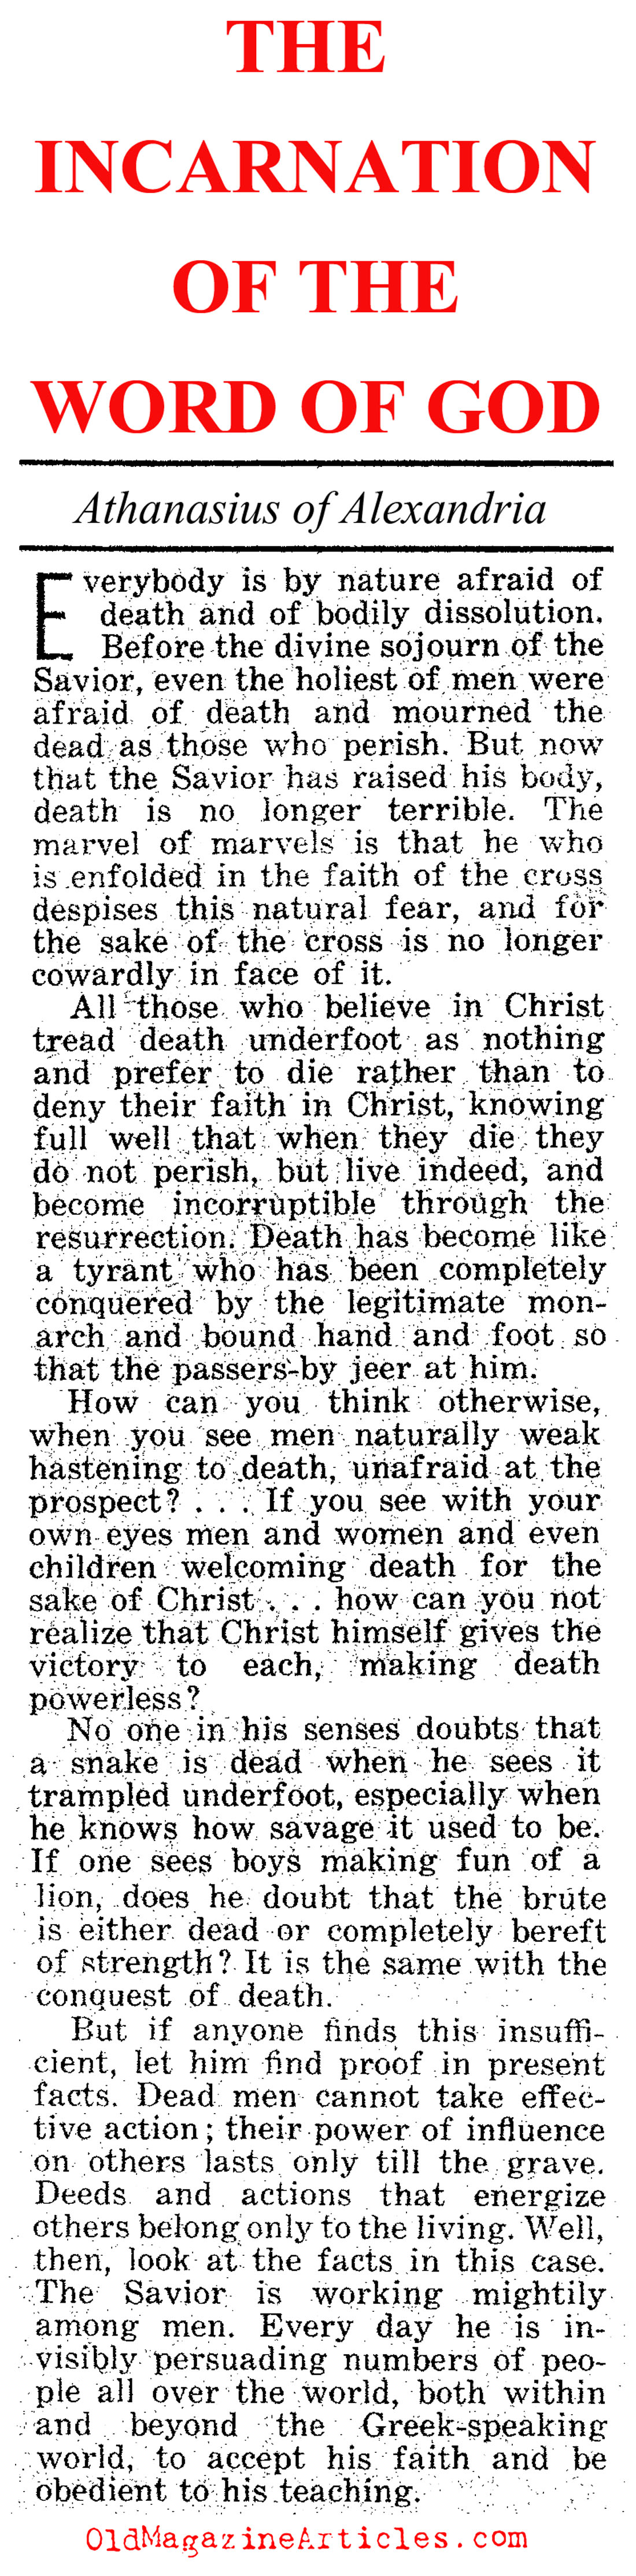 When the Word Became Flesh (Jesus People Magazine, 1973)